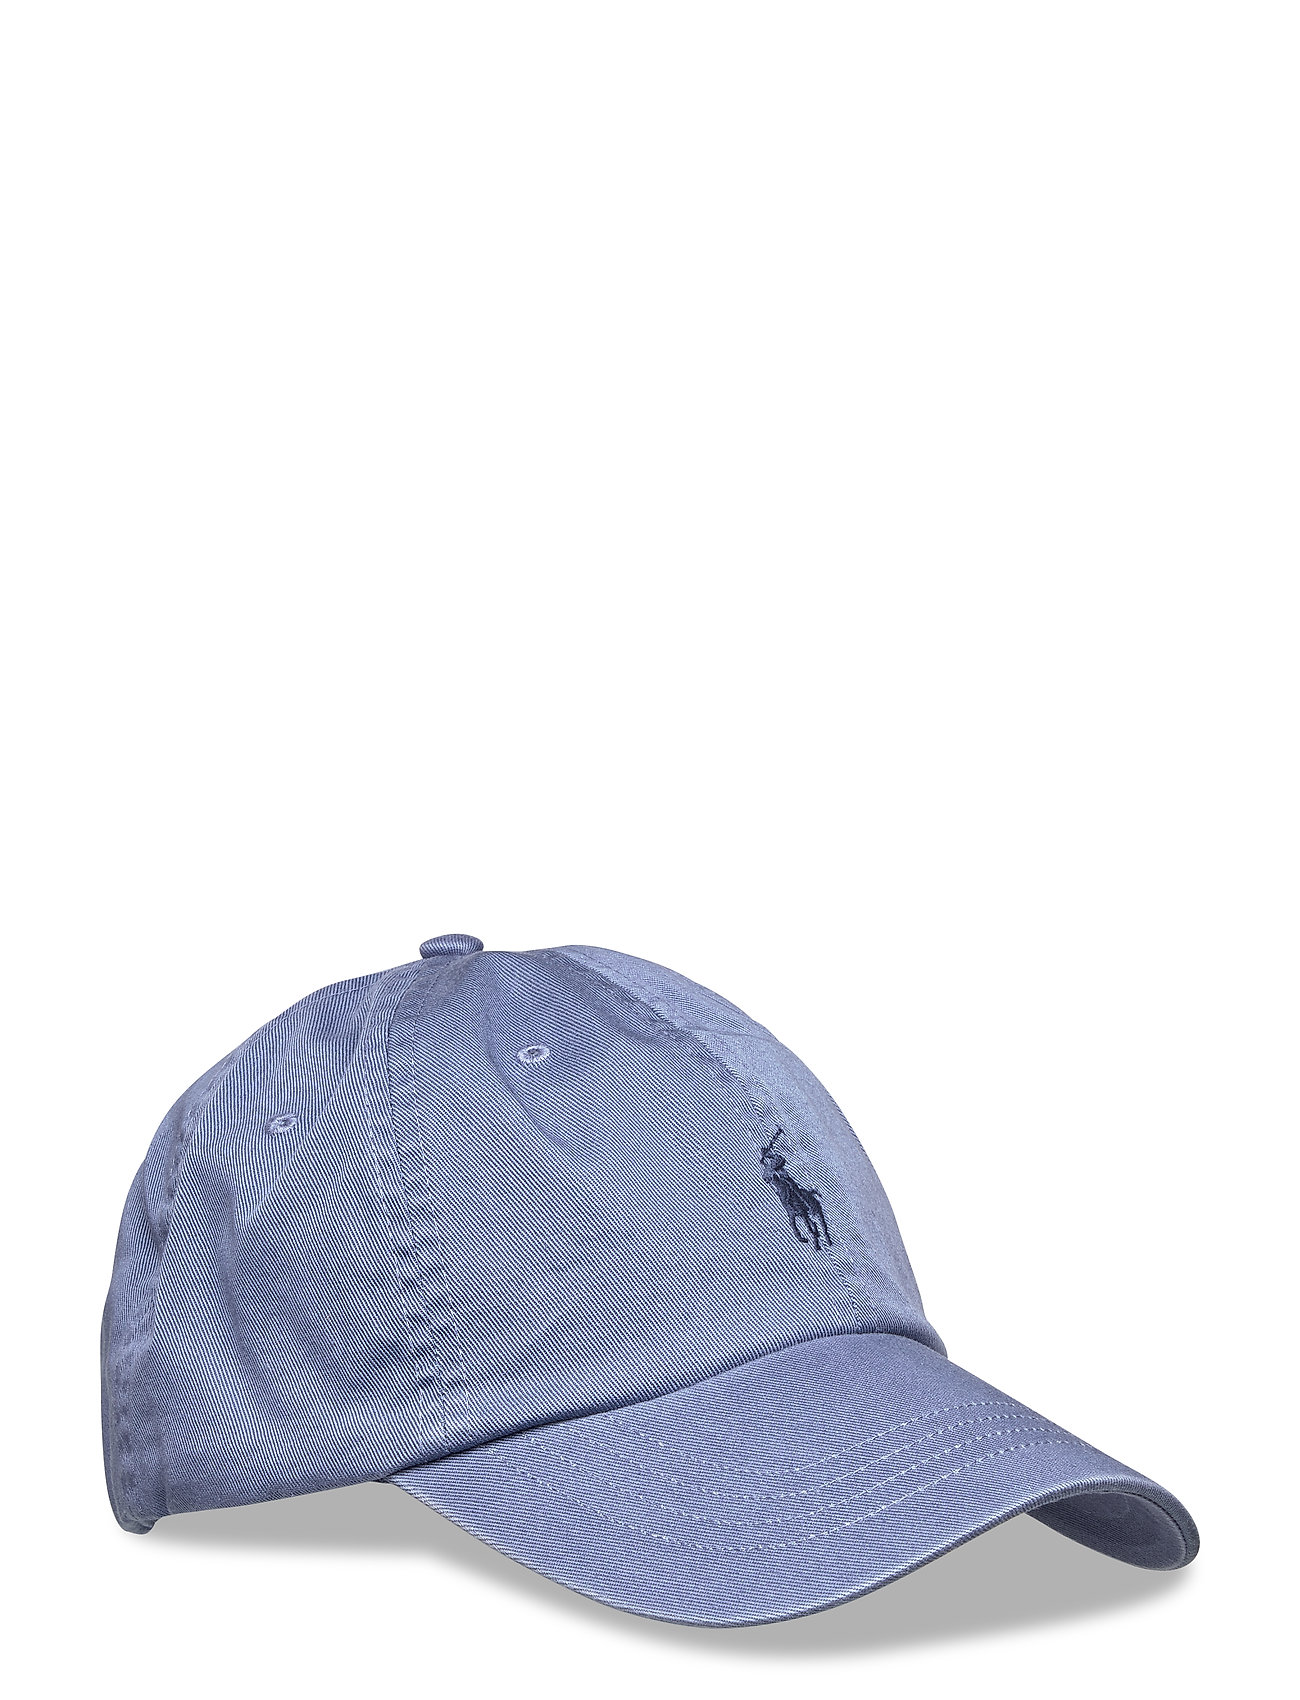 Cotton Chino Baseball Cap (Carson Blue adiro) (£35) - Polo Ralph ... d99a9a5019a